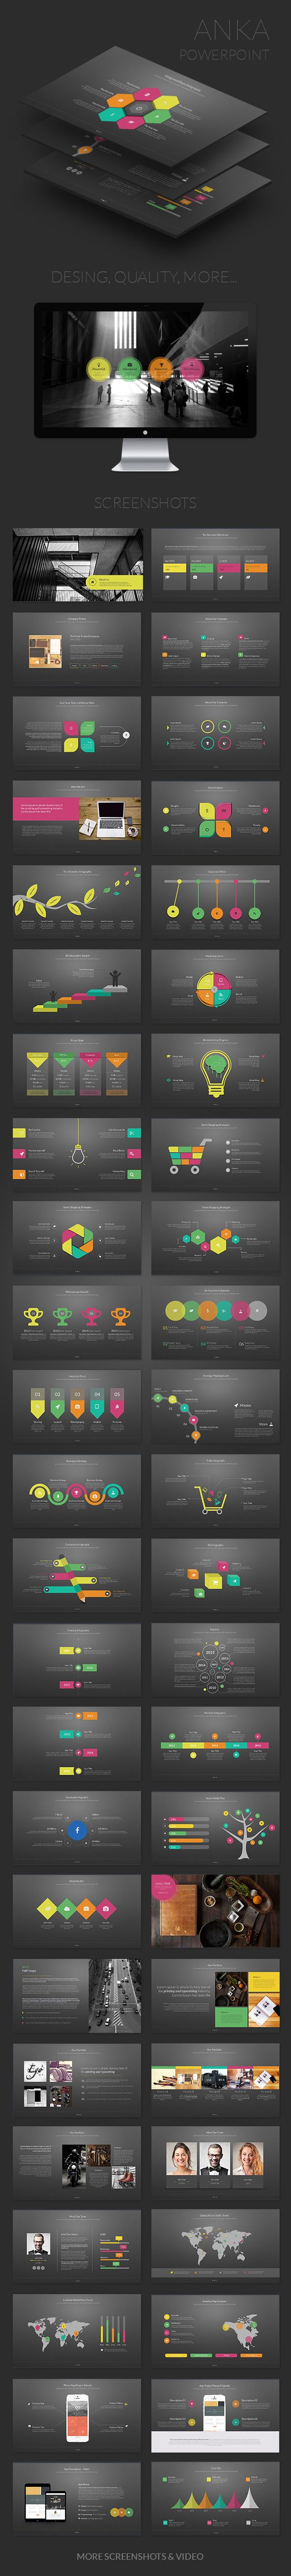 Anka Professional Powerpoint Template Download: http://graphicriver.net/item/anka-professional-powerpoint-template/10987089?ref=ksioks